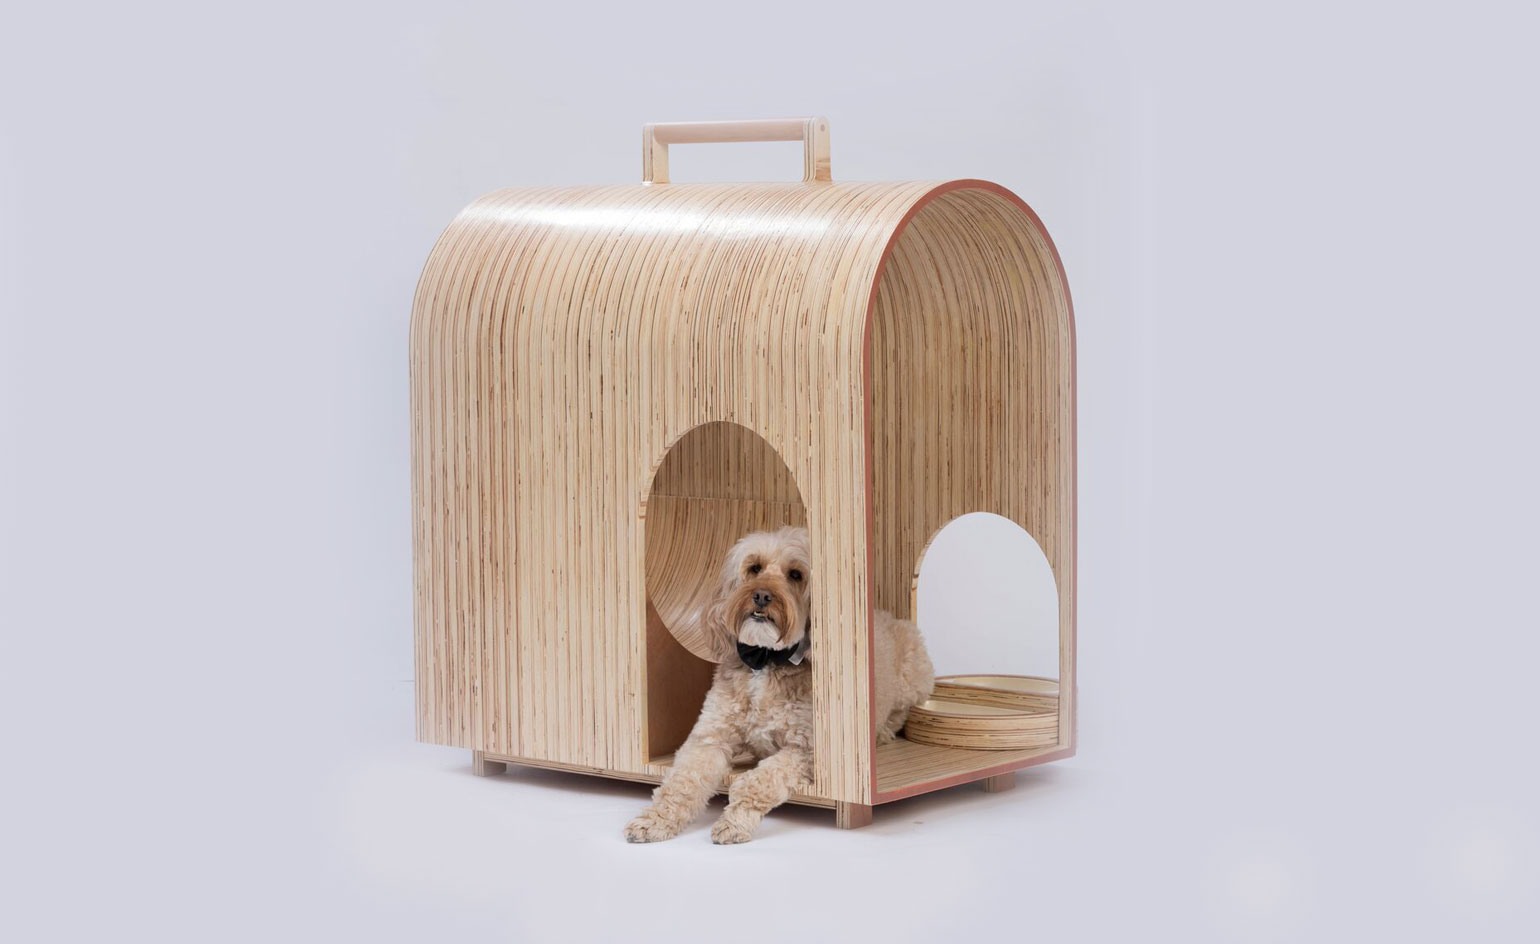 Zaha Hadid's designer dog kennel joins a pack of pooch ... - photo#7